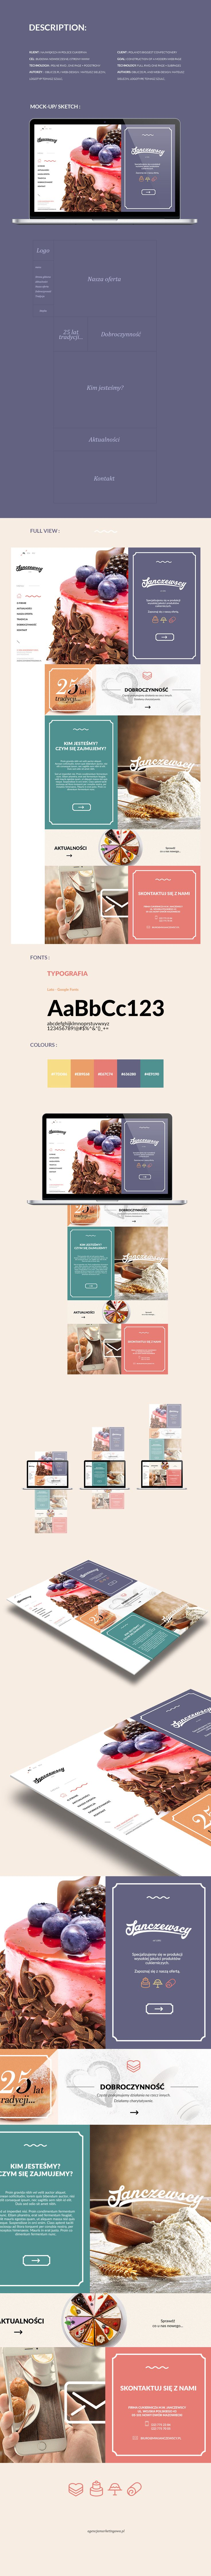 Biggest Polish Confectionery One Page Website on Behance